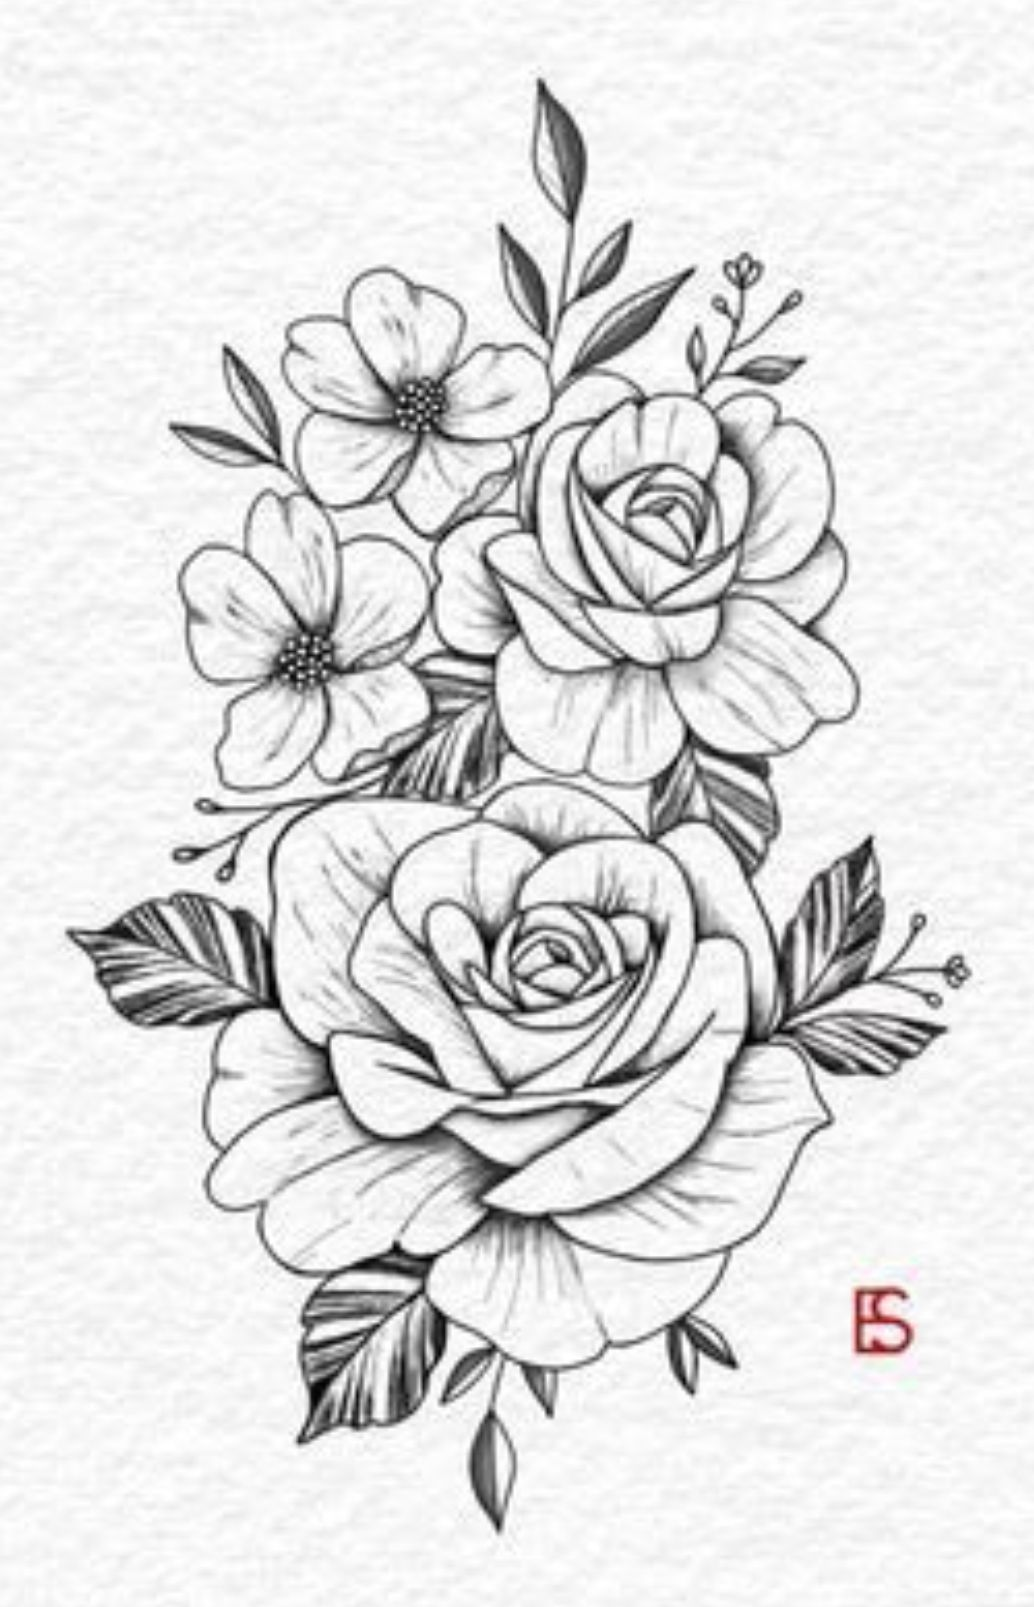 Freehand Drawing Of Rose Rose Drawing Tattoo Rose Tattoos Floral Tattoo Design